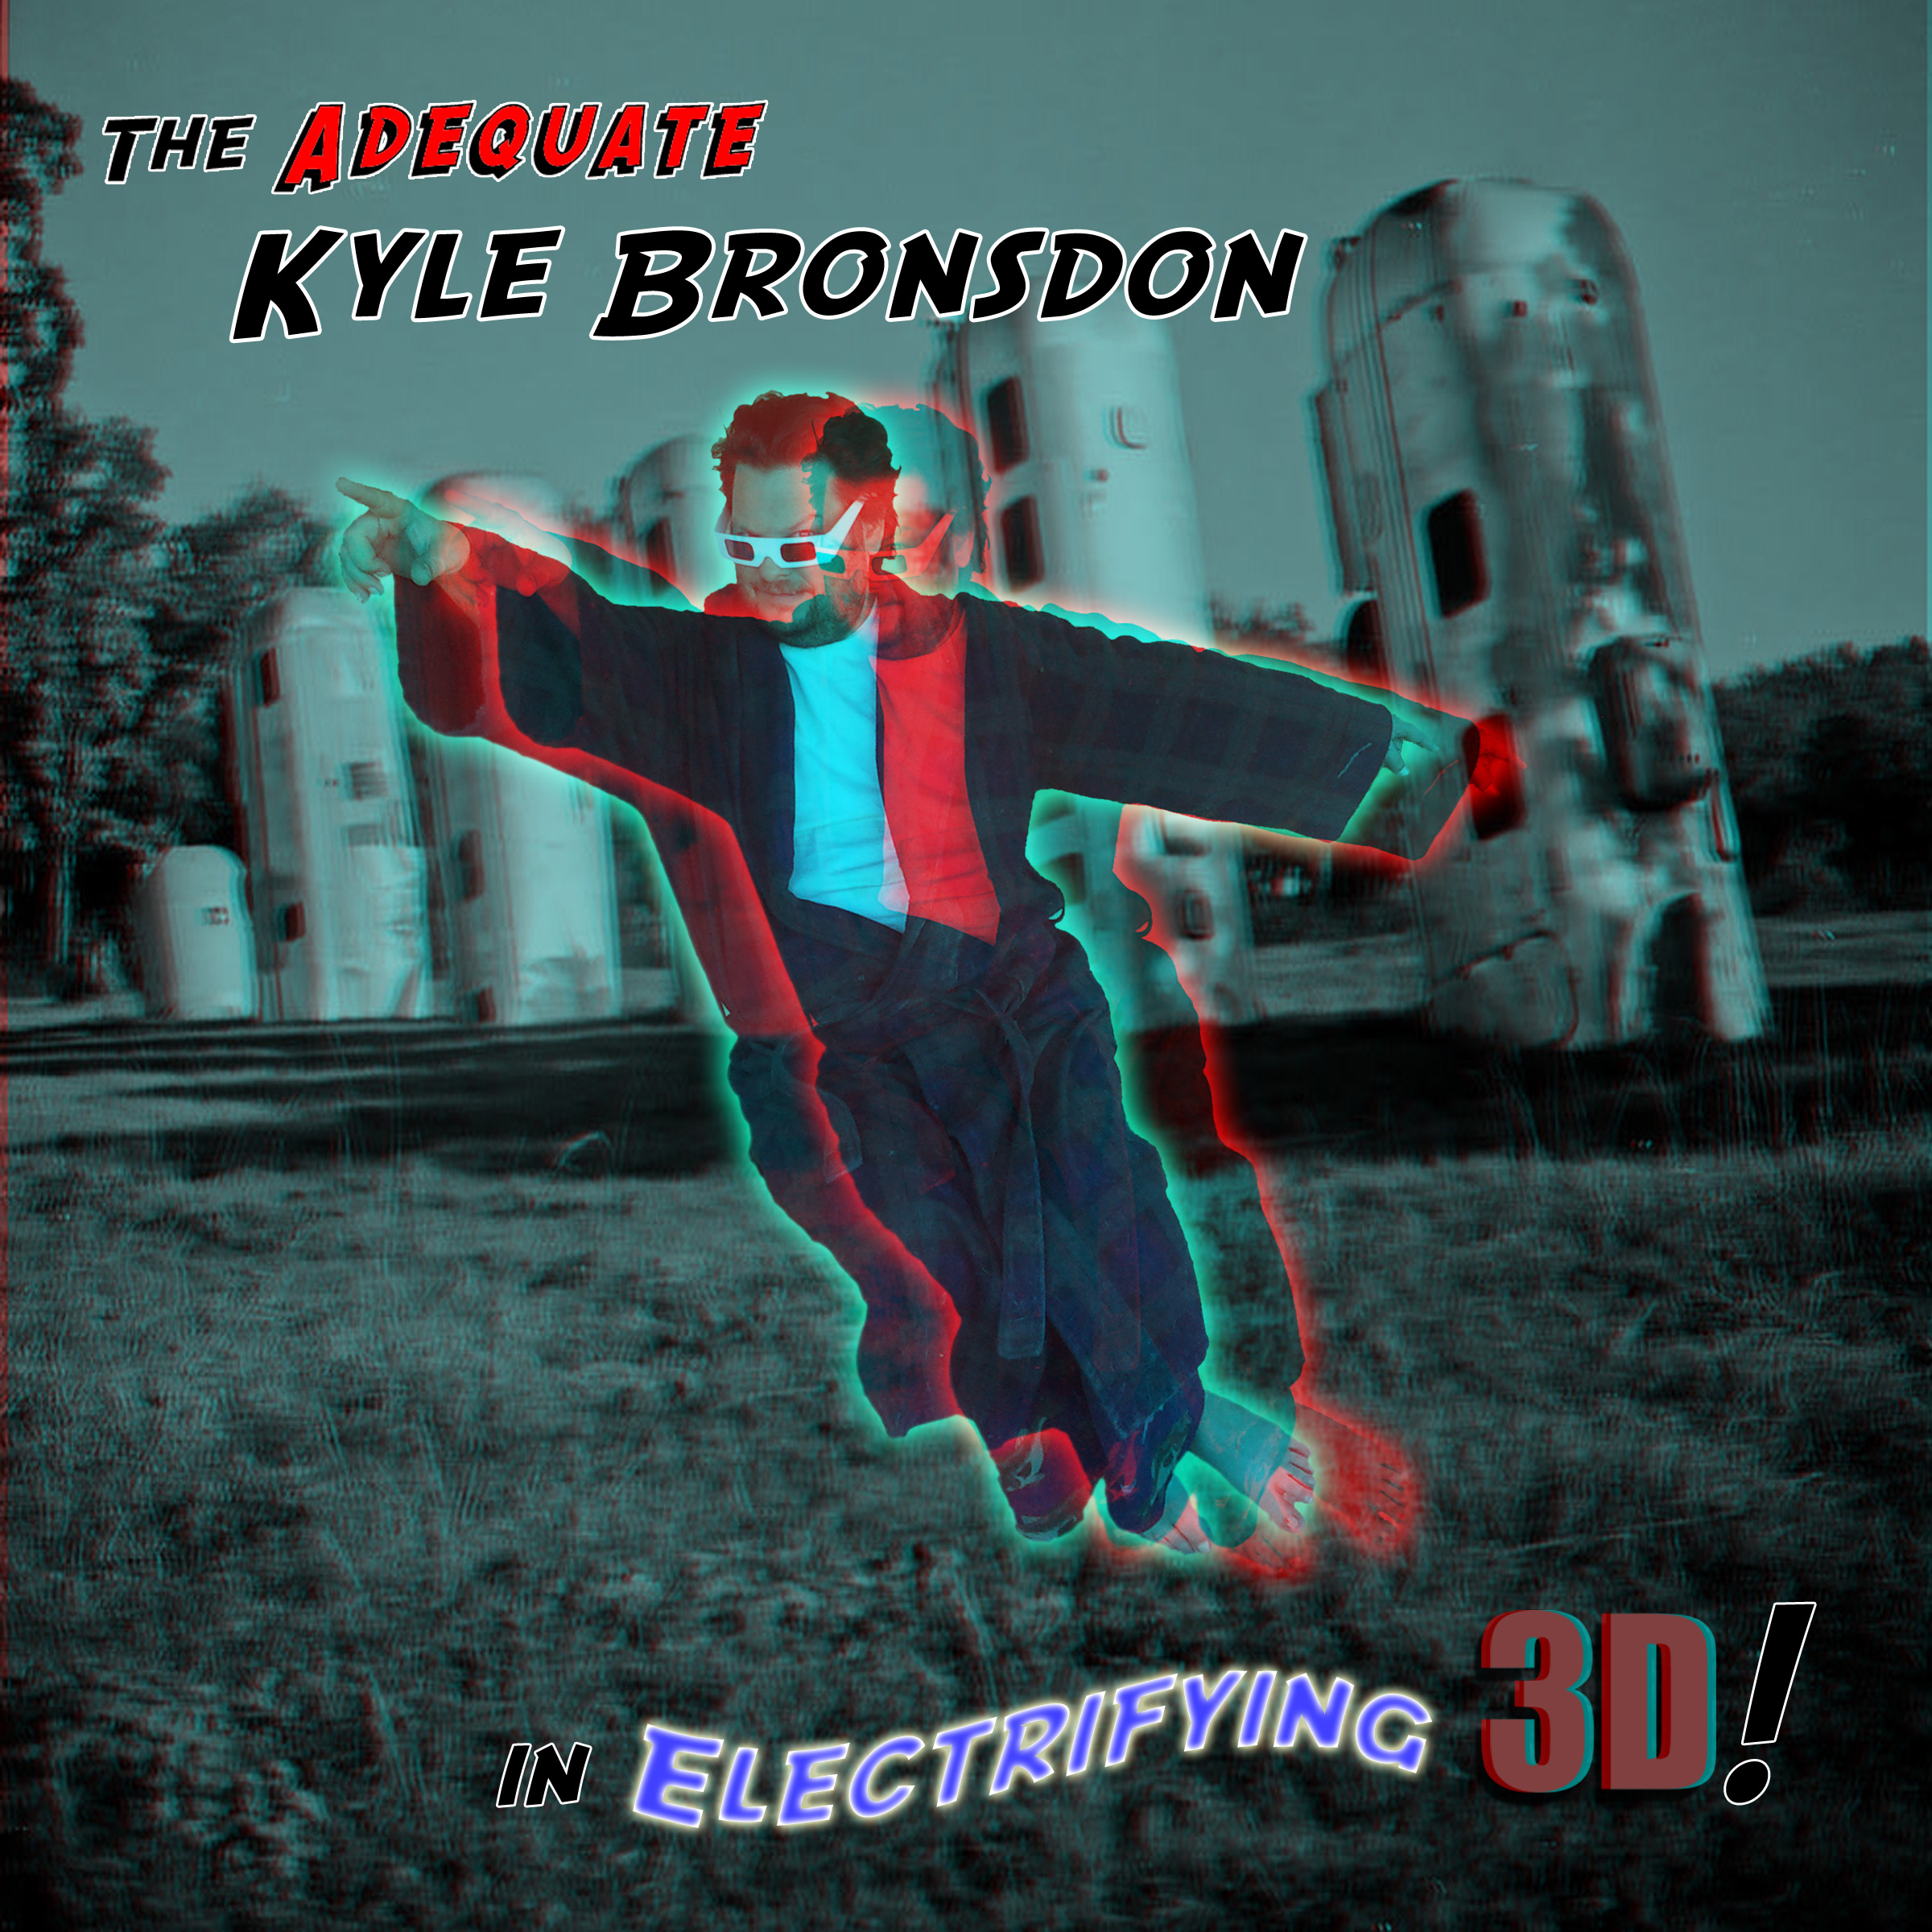 The Adequate Kyle Bronsdon in Electrifying 3-D! 2012